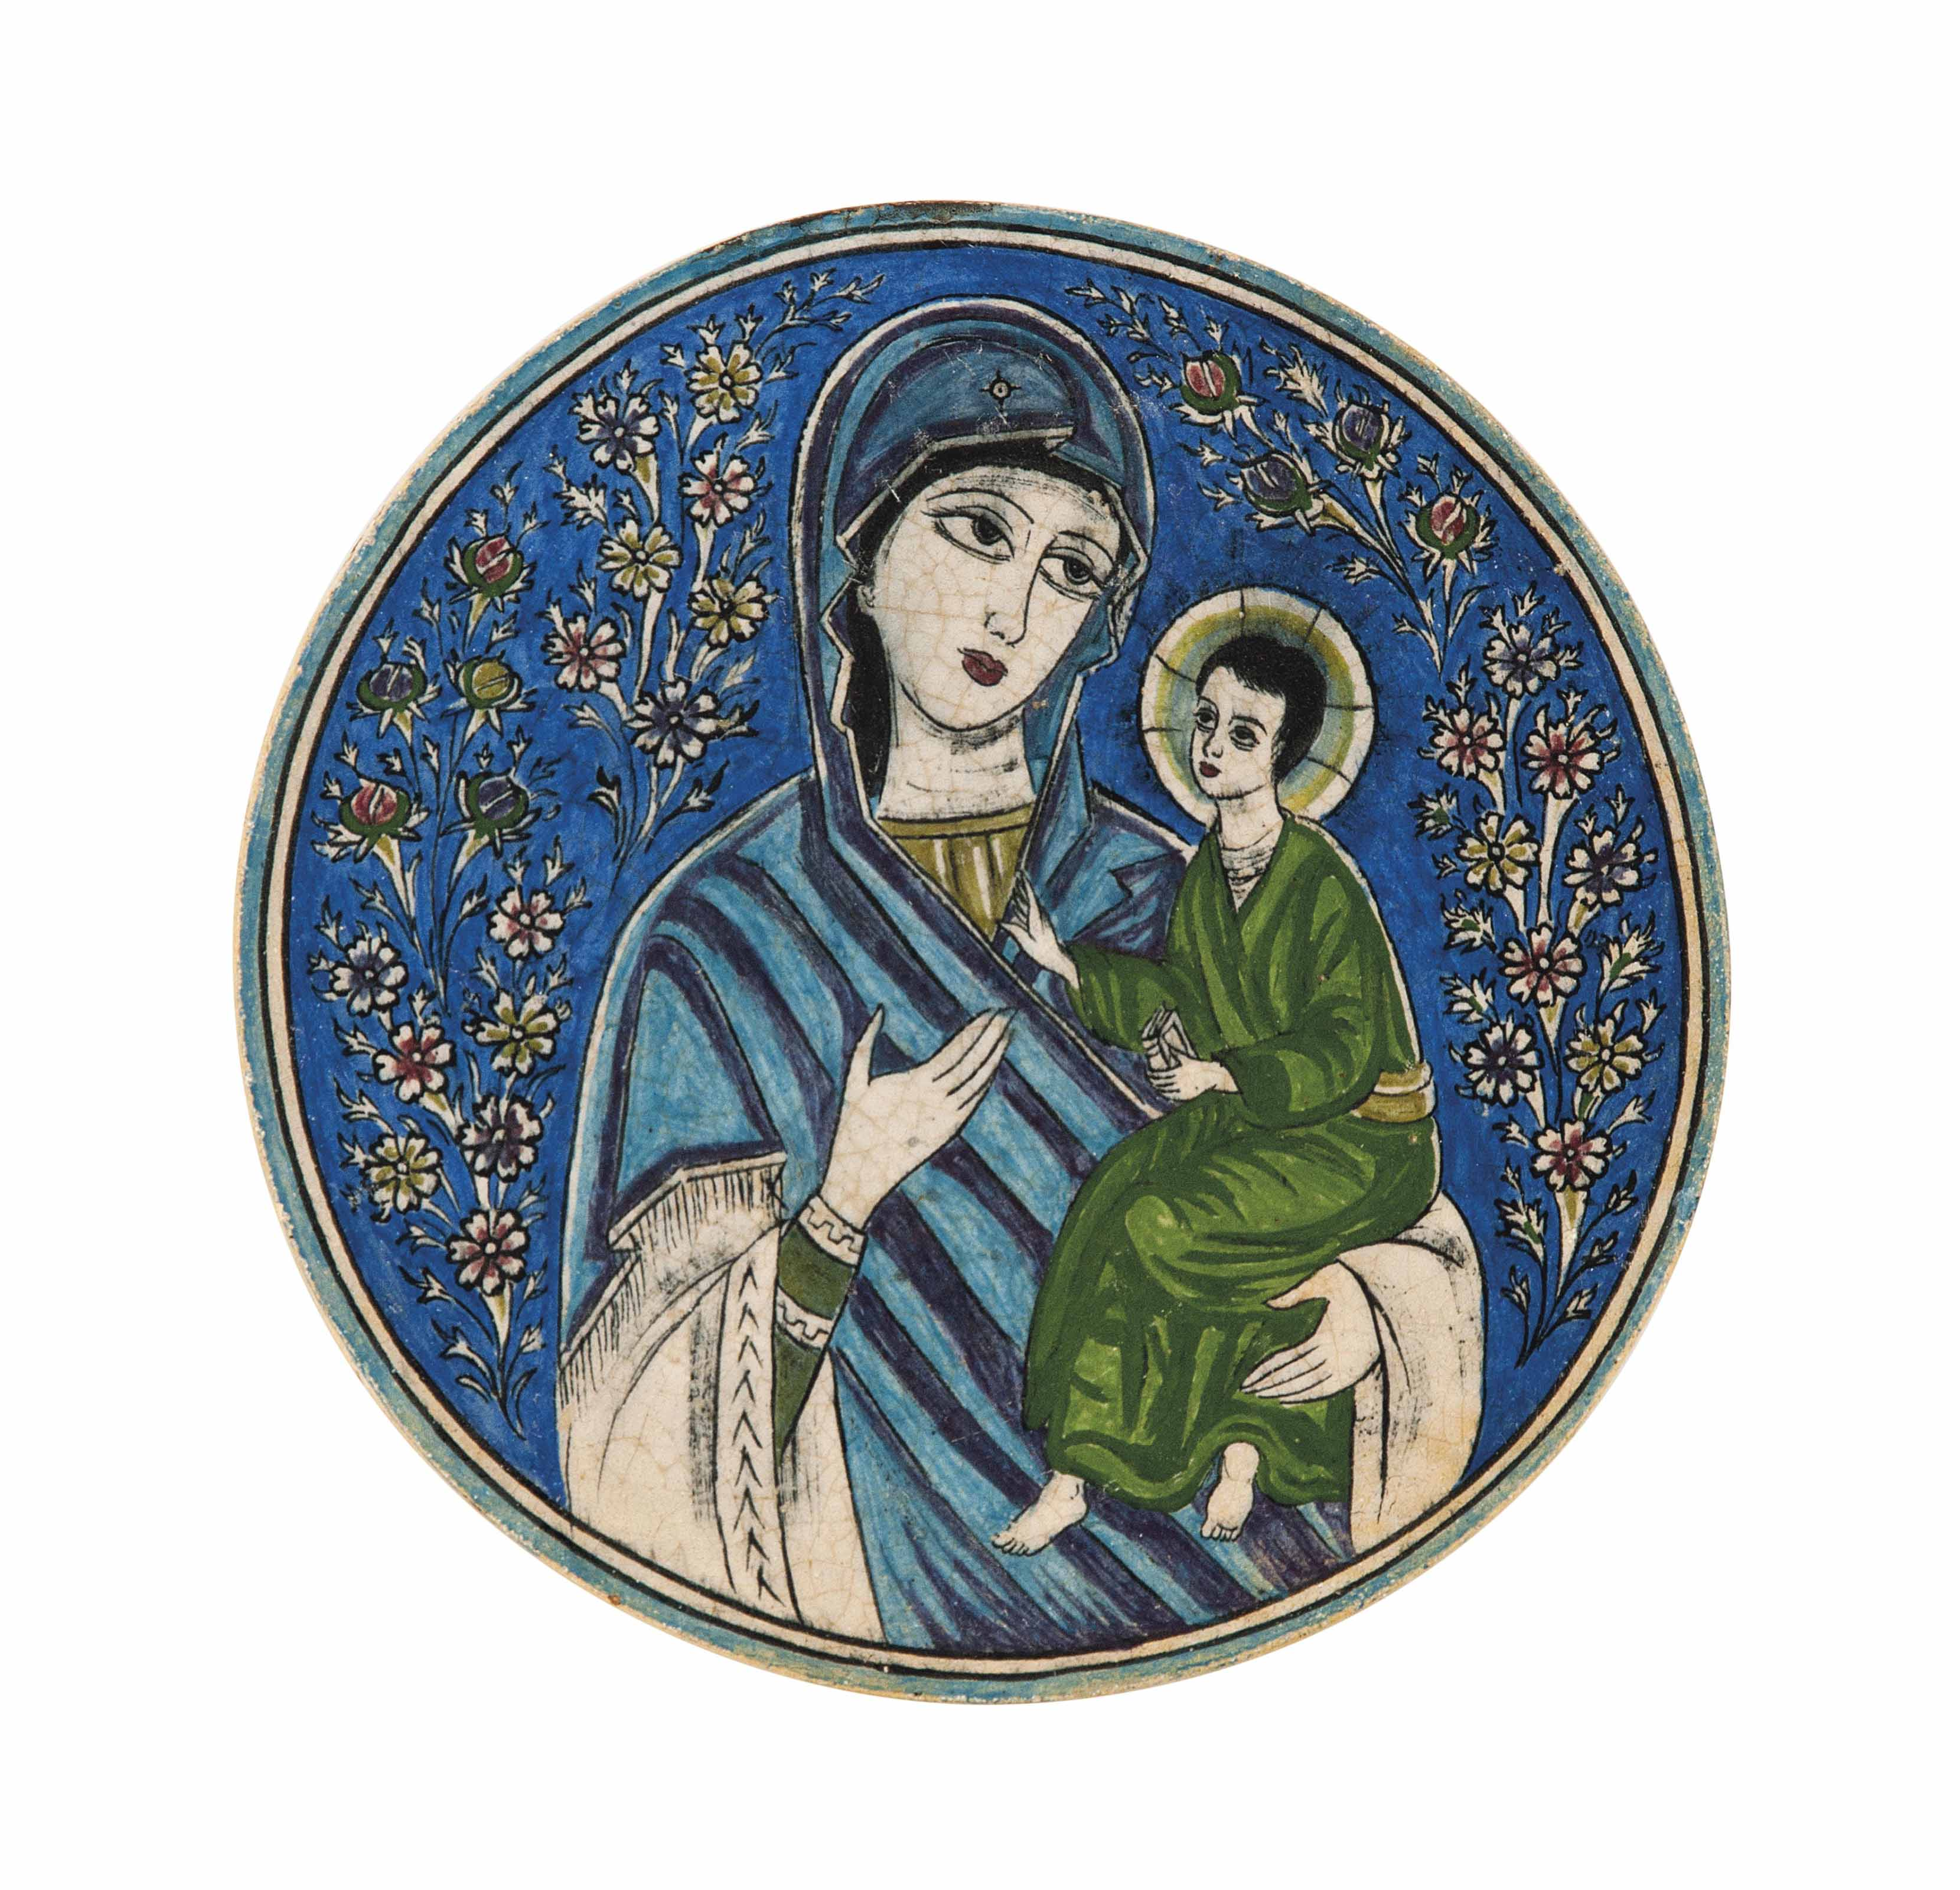 A CIRCULAR POTTERY TILE DEPICTING THE VIRGIN MARY AND CHILD